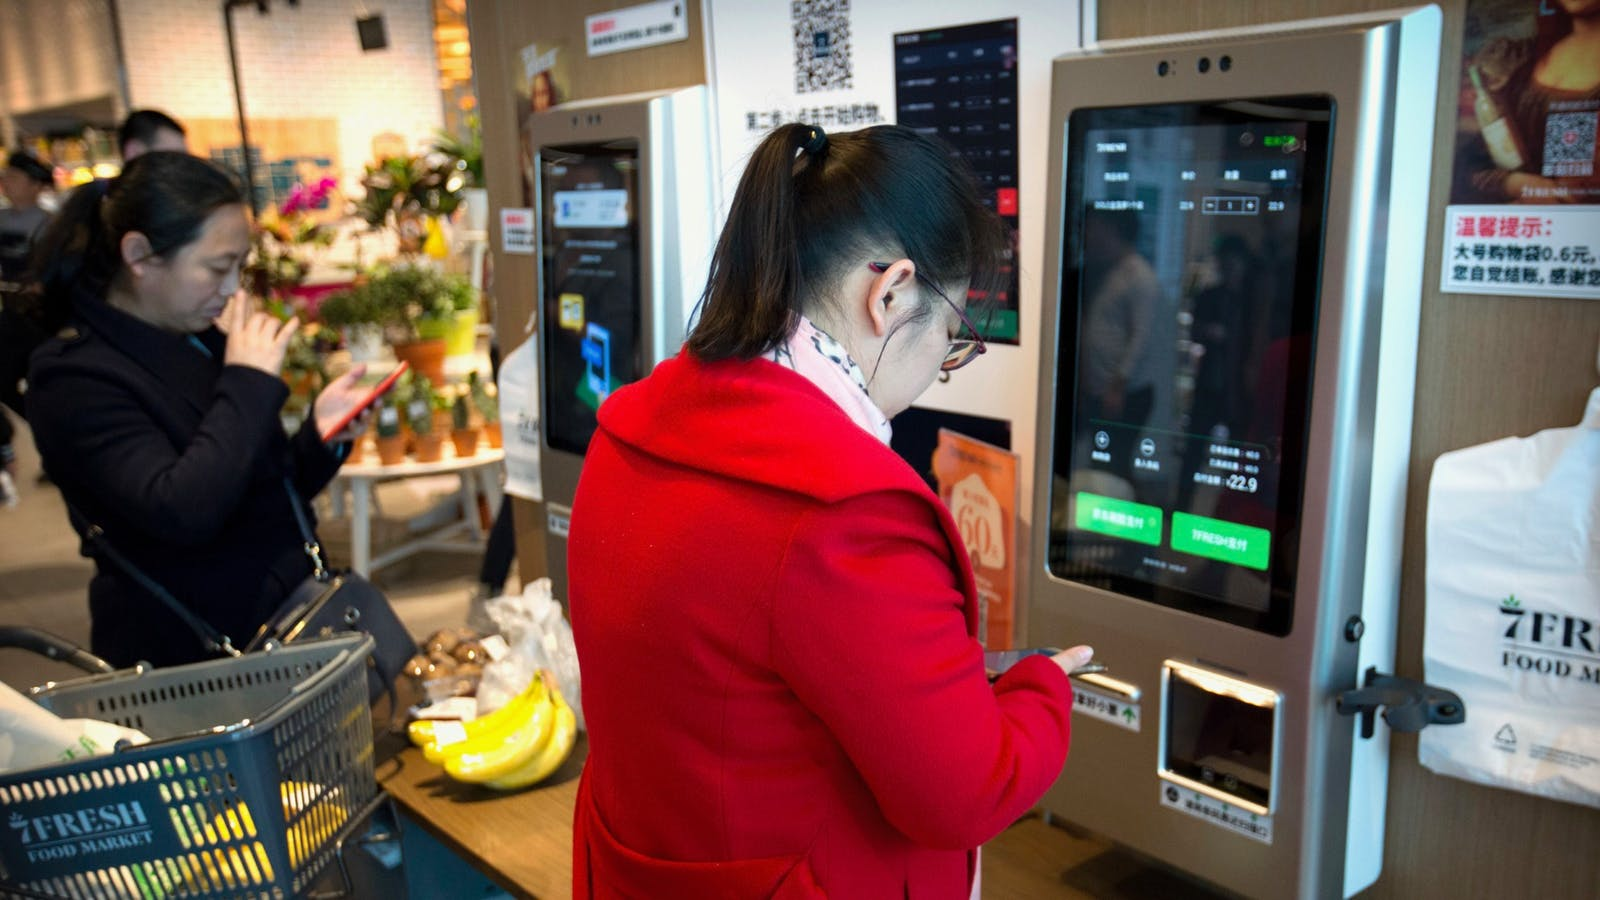 Customers in Beijing used JDPay electronic payment apps on their smartphones last year to pay at a 7FRESH grocery store operated by JD.com. Photo: AP